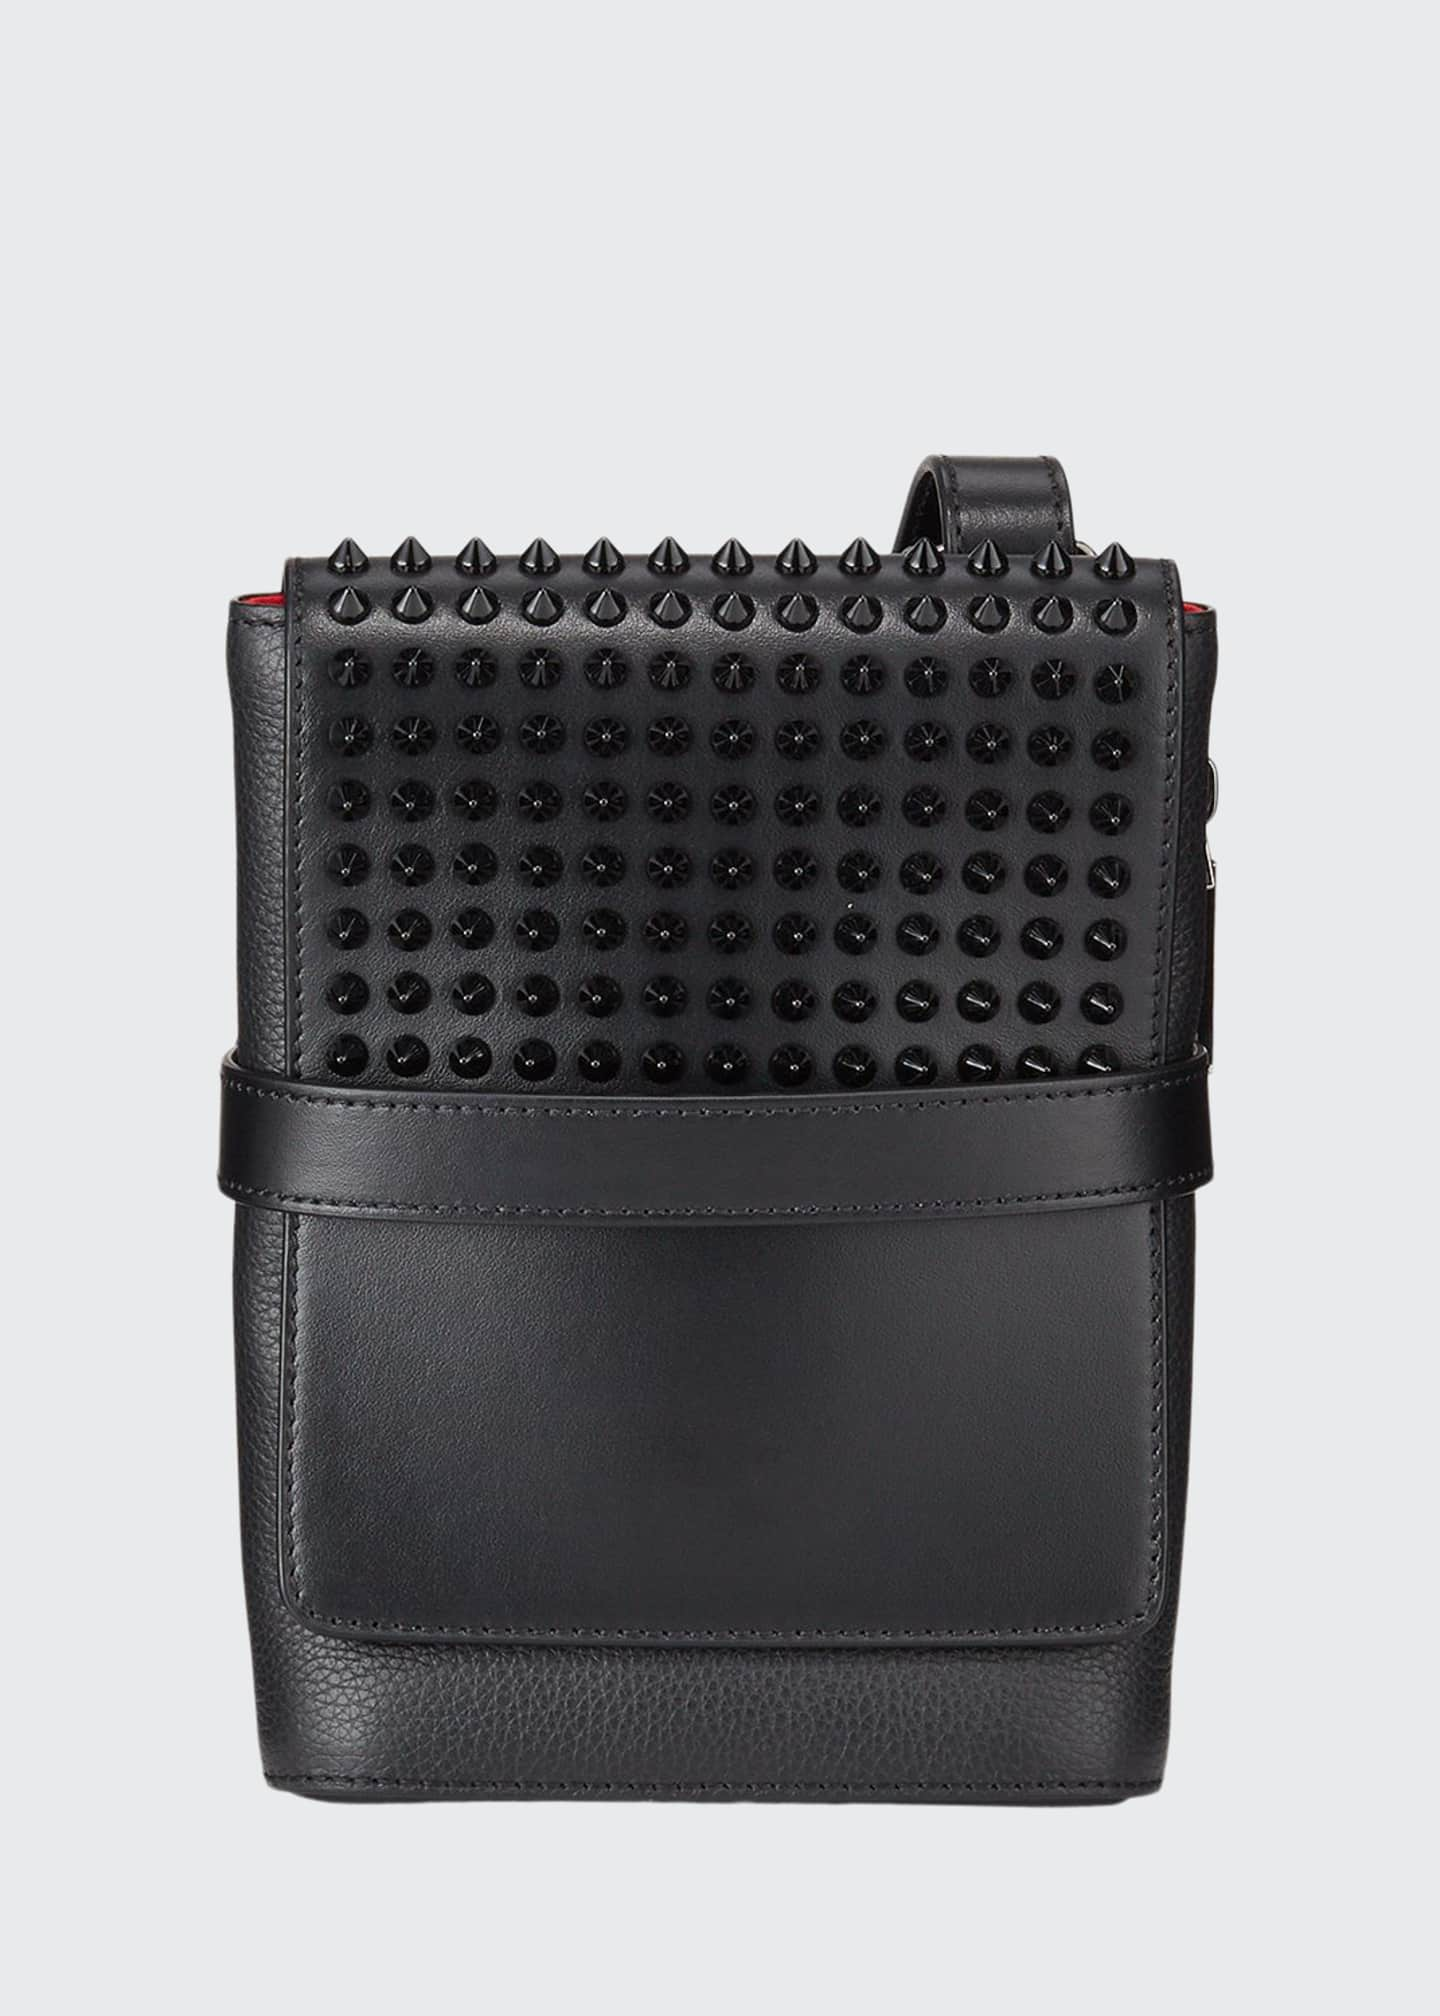 Christian Louboutin Men's Benech Reporter Spiked Leather